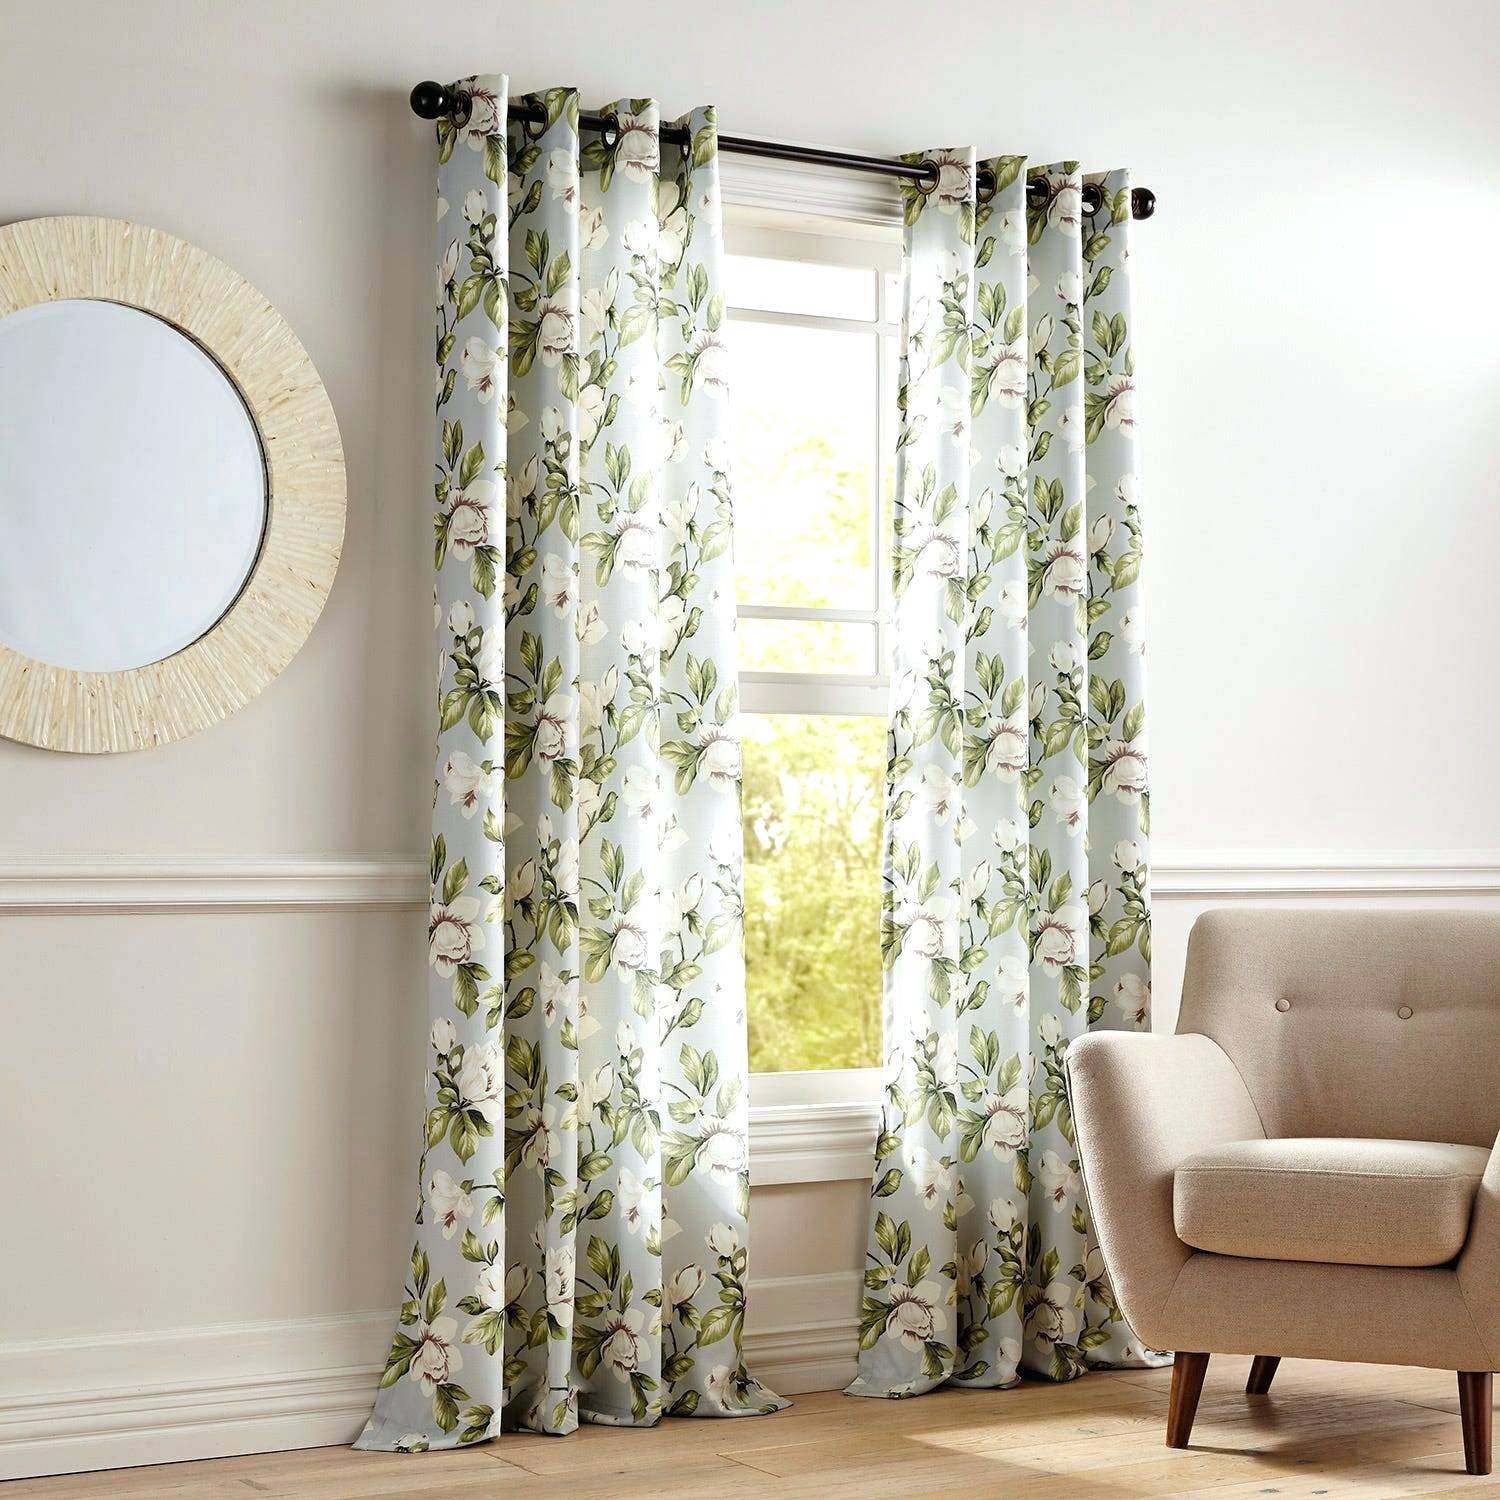 Gray Curtains Gray Velvet Curtains Amazon Gray Curtains With In Tulle Sheer With Attached Valance And Blackout 4 Piece Curtain Panel Pairs (View 16 of 30)